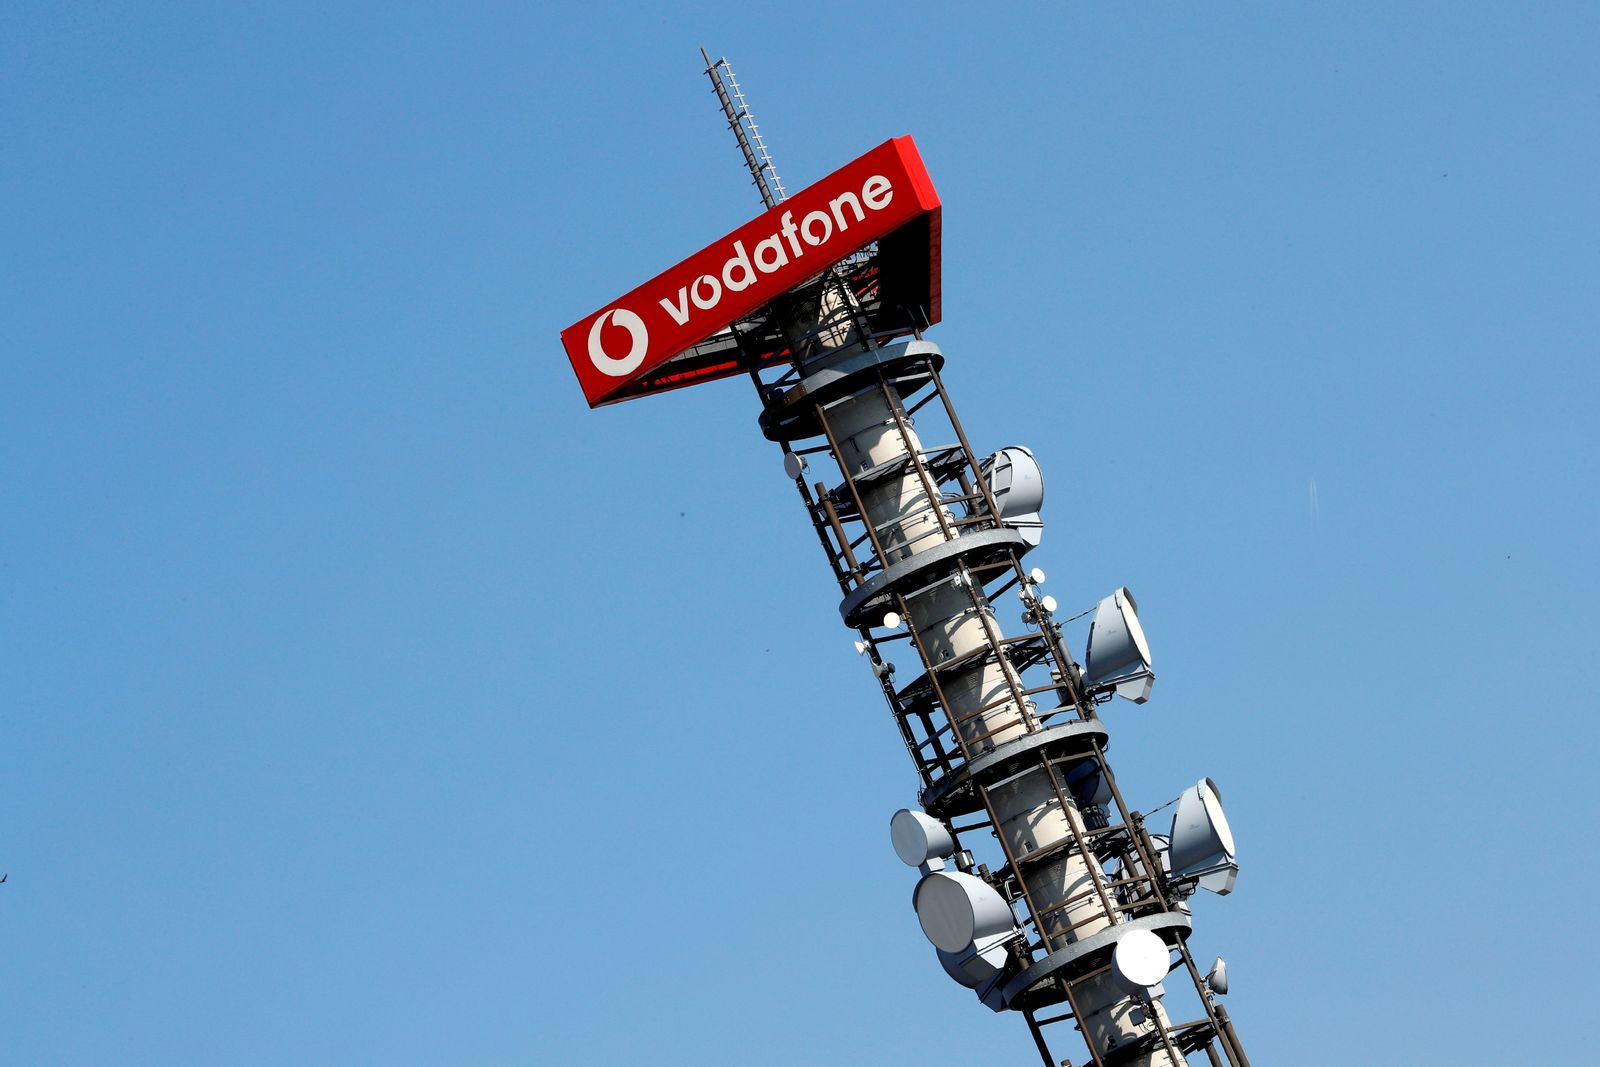 FILE PHOTO: Different types of 4G, 5G and data radio relay antennas for mobile phone networks are pictured on a relay mast operated by Vodafone in Berlin